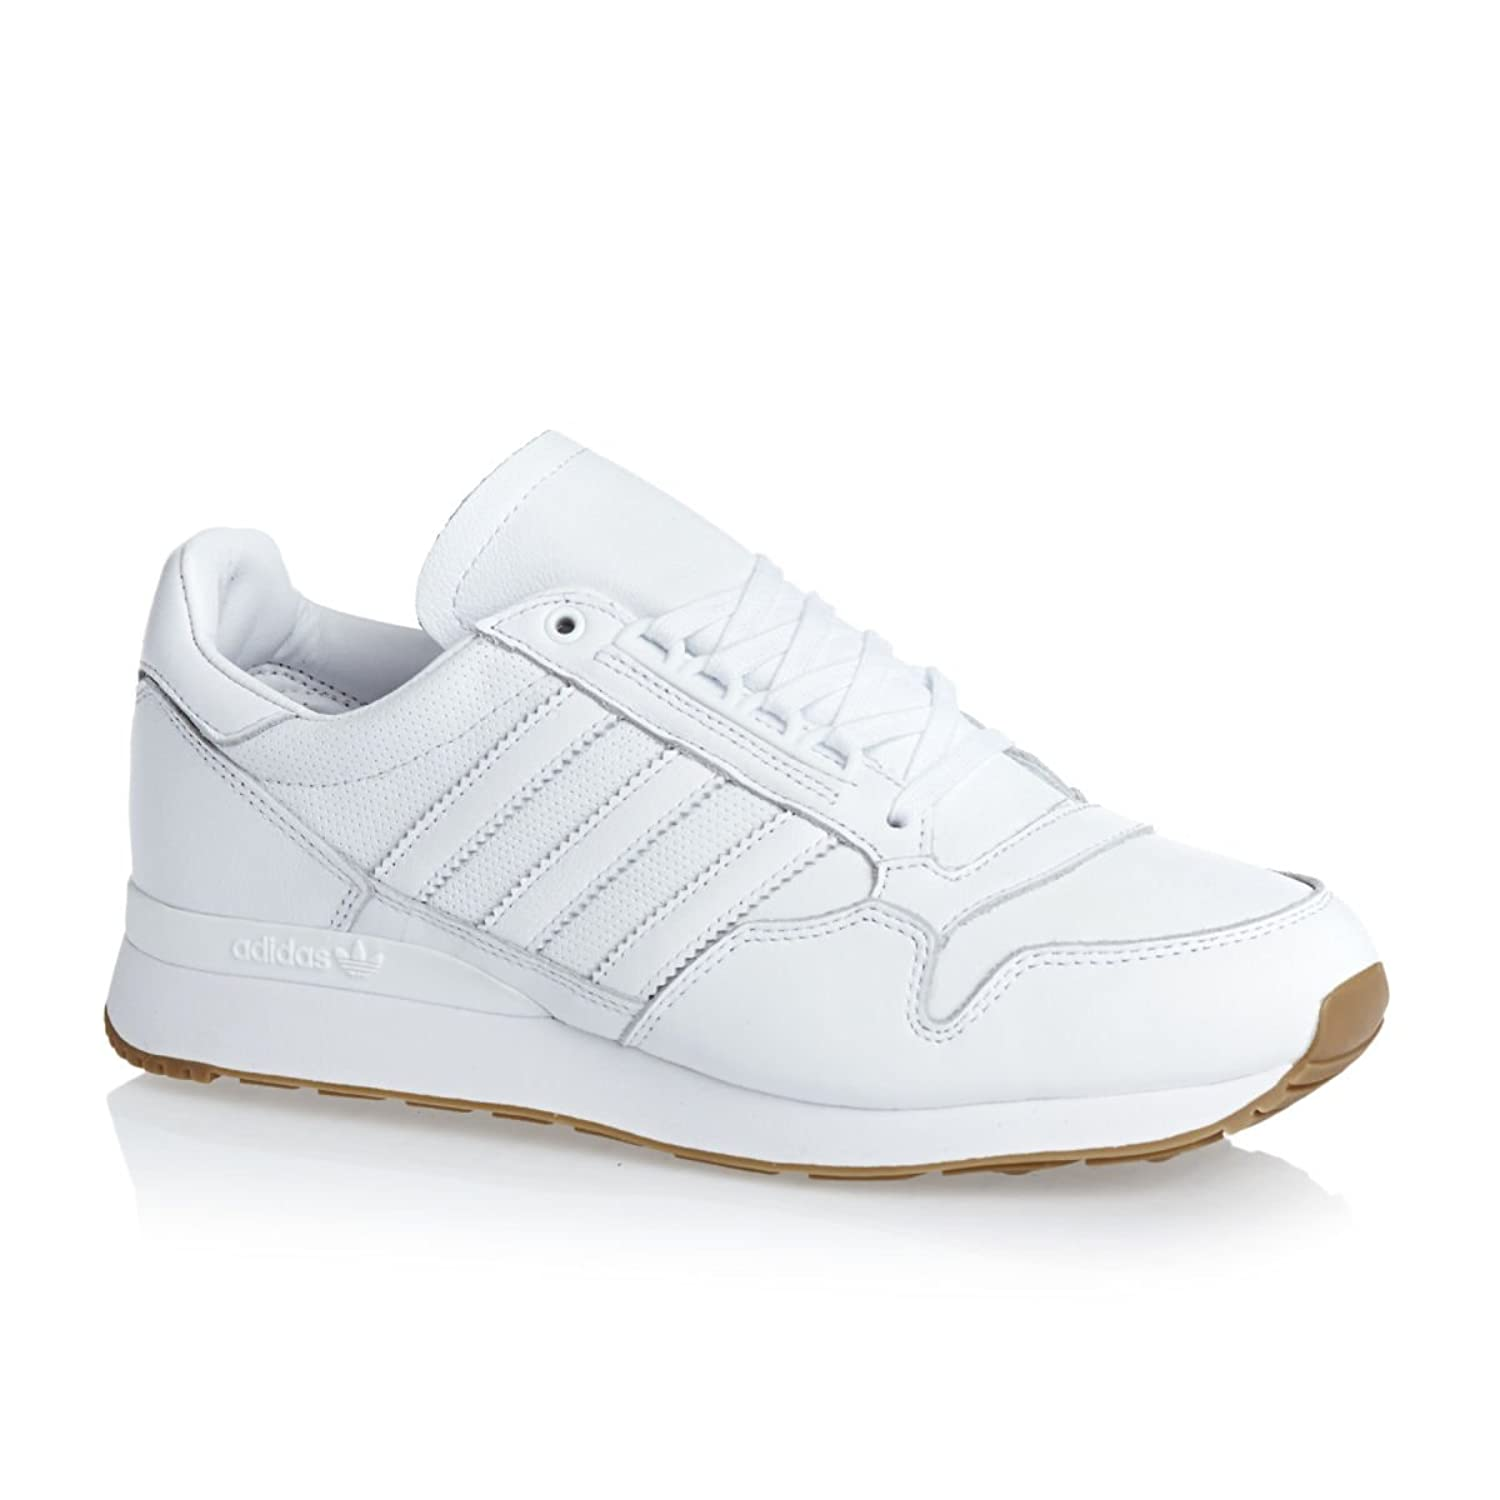 size 40 25fc4 14f27 adidas Originals ZX 500 OG Mens Trainers White S 79181